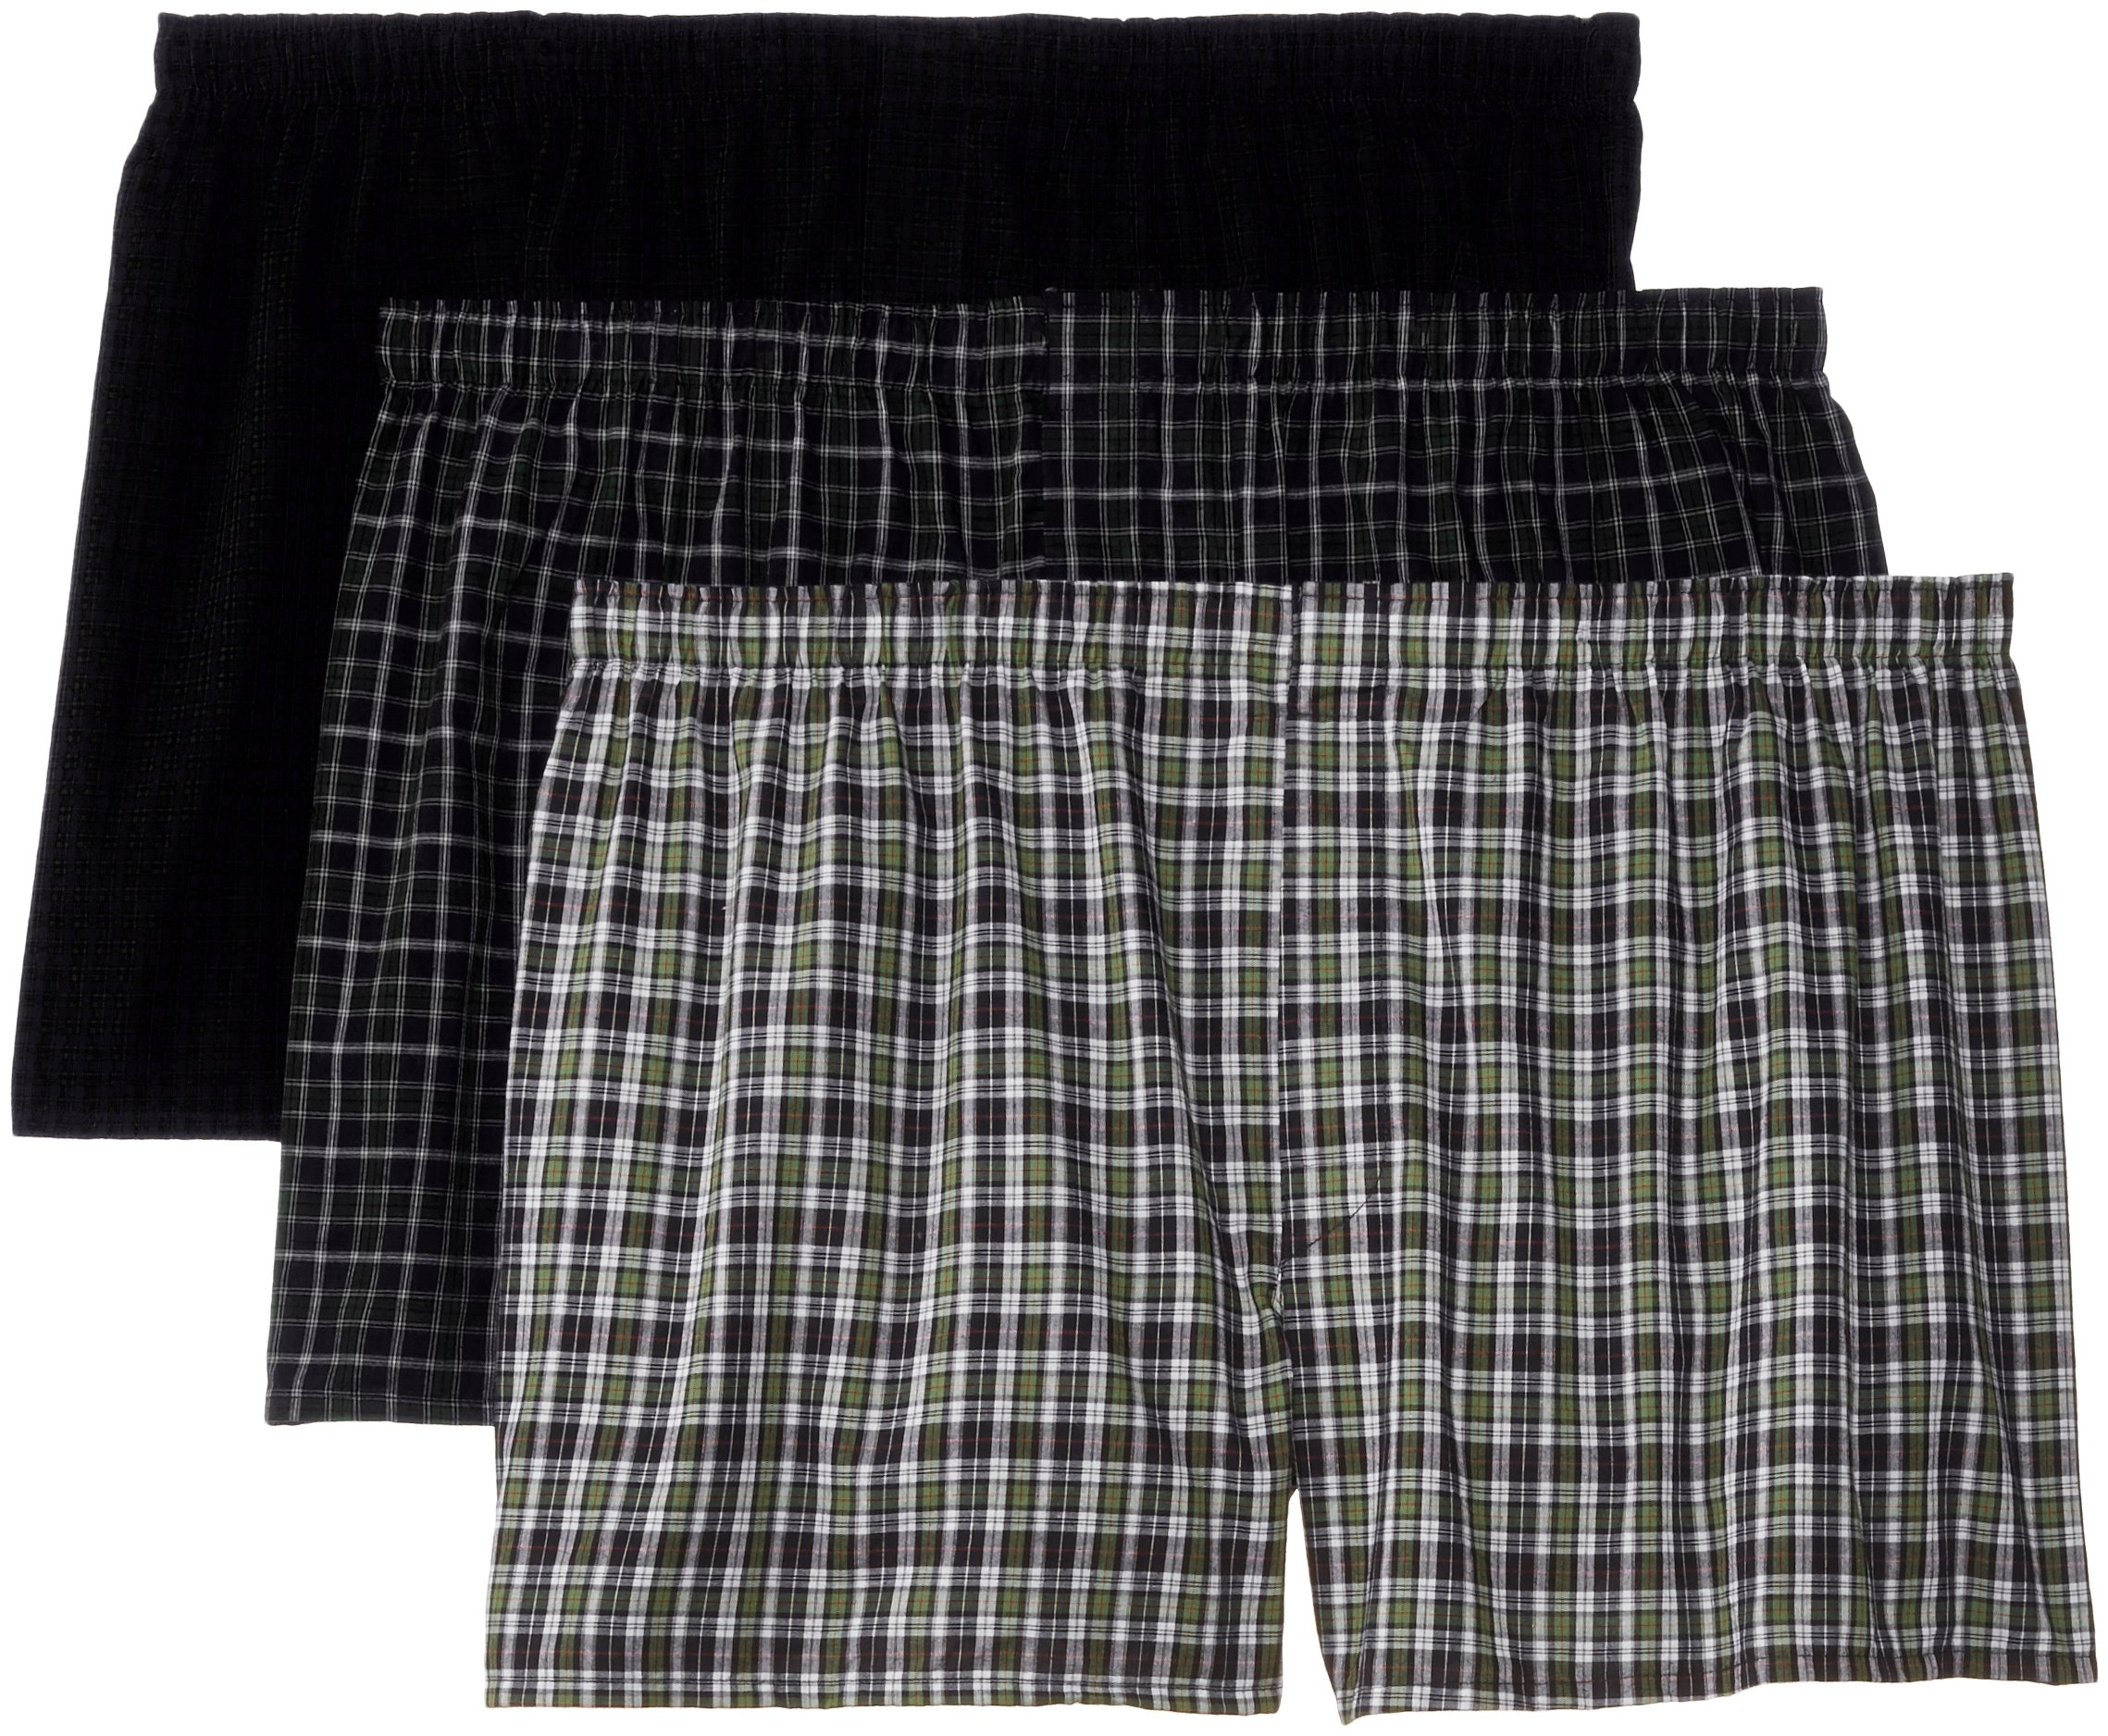 Hanes Men's 3-Pack Woven Boxers-Big Sizes, Assorted, 4X-Large by Hanes